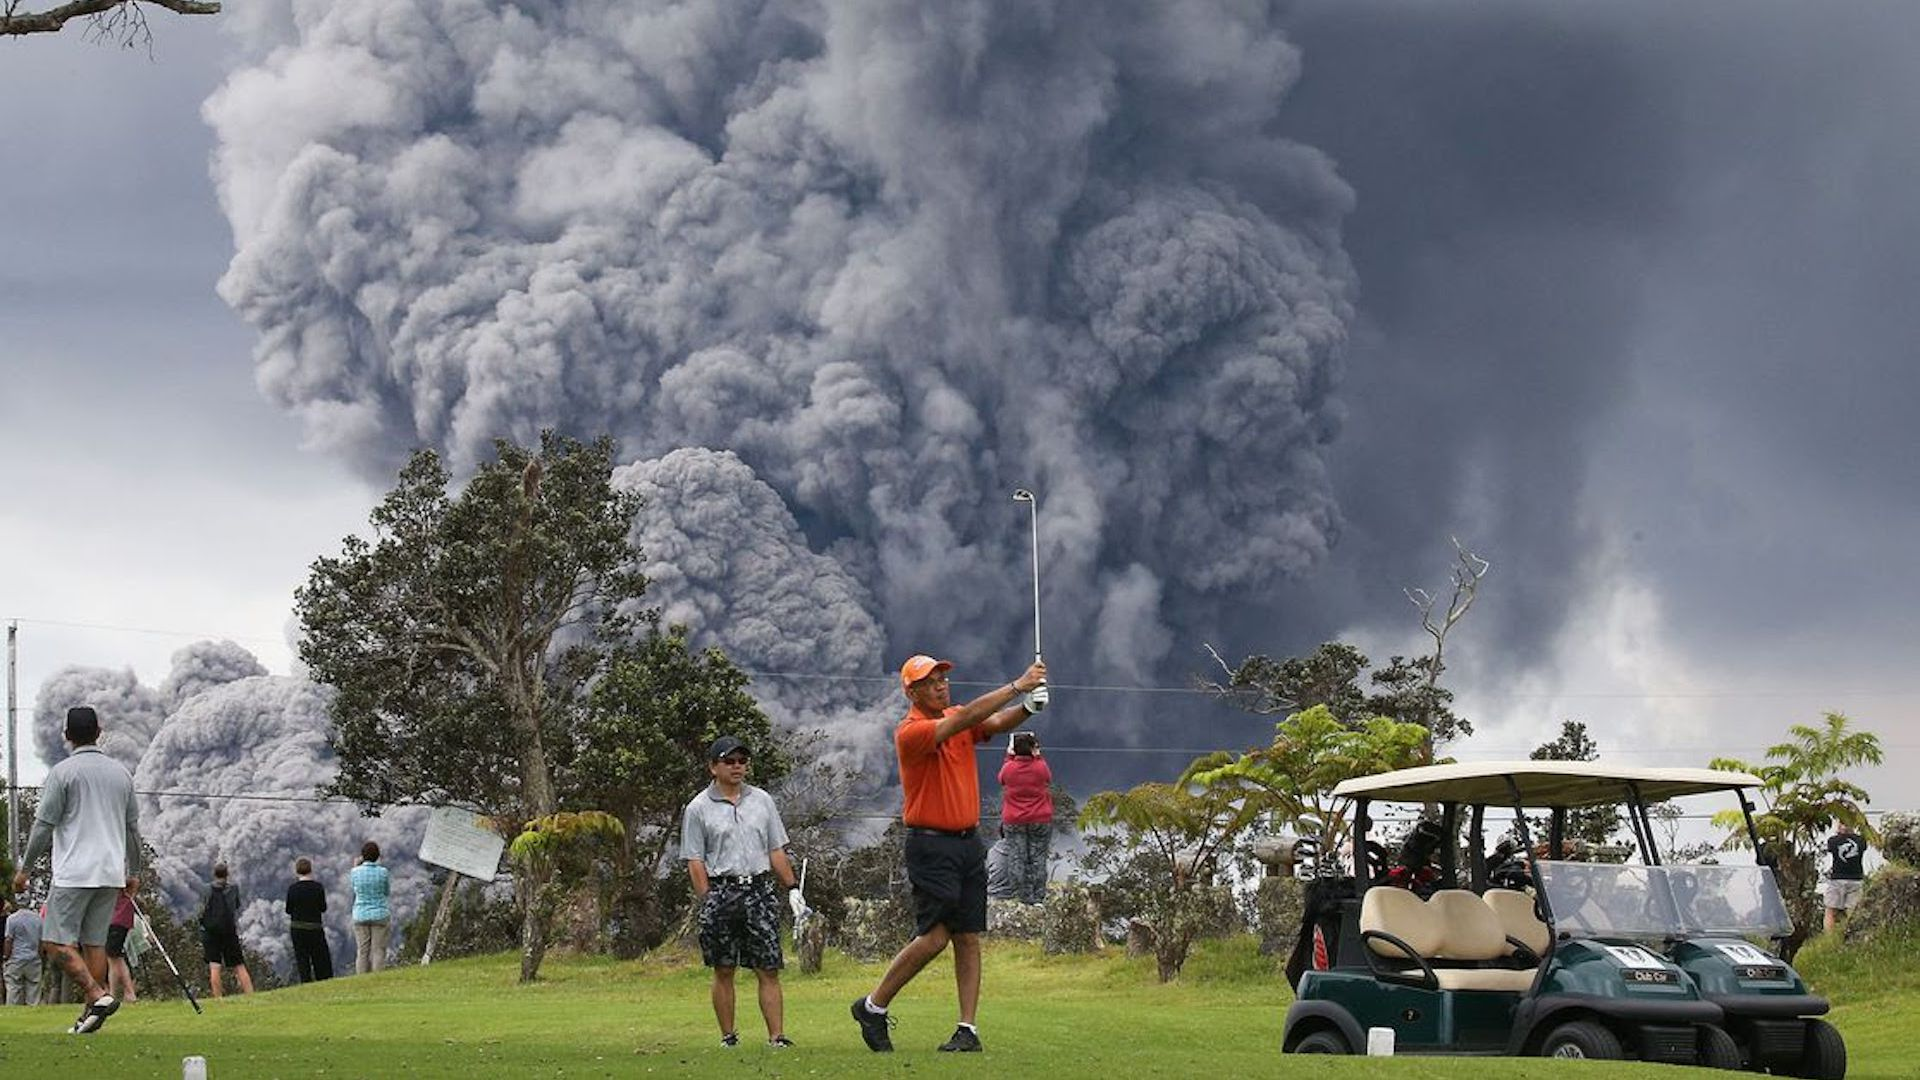 The Kilauea Volcano eruption looms behind a golfer in Hawaii Volcanoes National Park on May 15, 2018.